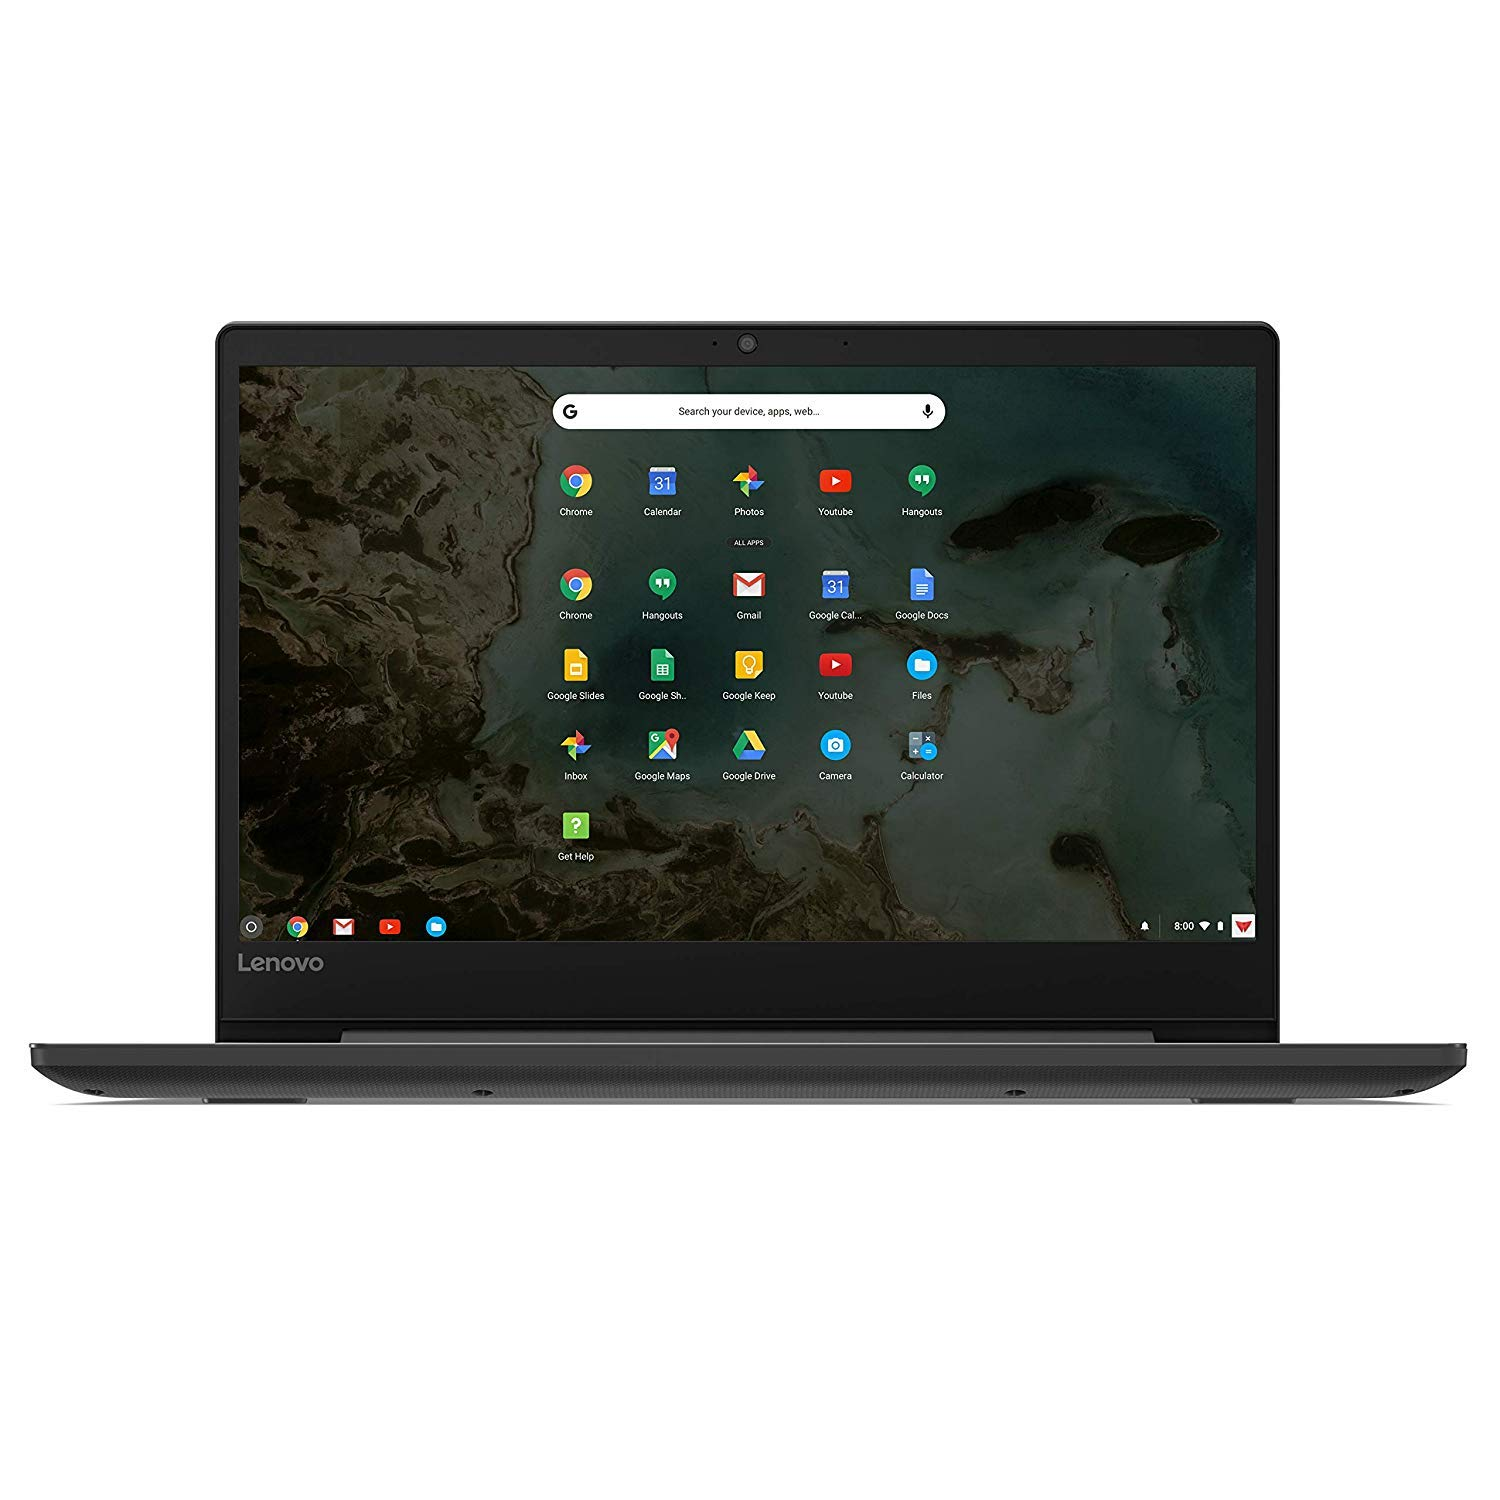 Lenovo Chromebook S330 14in Laptop Computer, Mediatek MT8173C up to 1.7 Ghz, 4GB RAM, 32GB eMMC SSD, Bluetooth, HDMI, USB-C, SD Card Reader, Chrome OS, Black Renewed